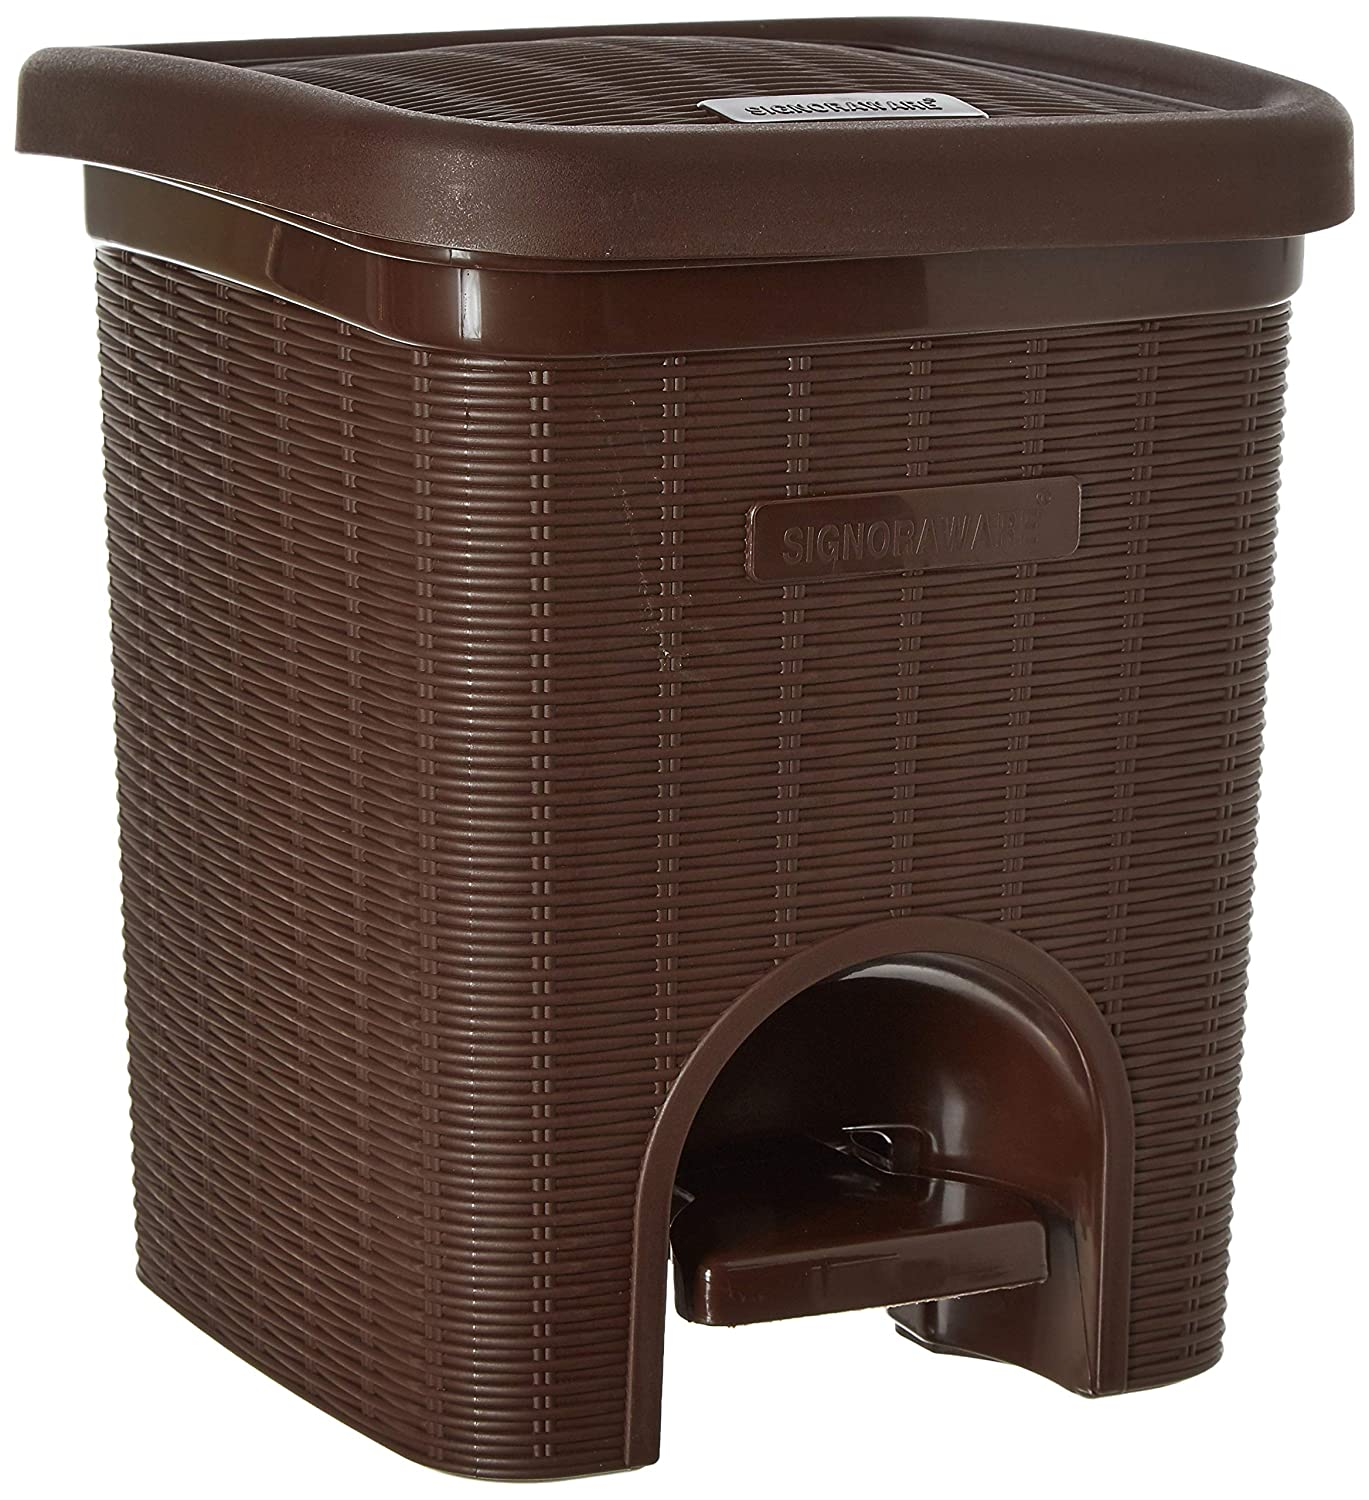 Signoraware Modern Lightweight Dustbin For Home And Office